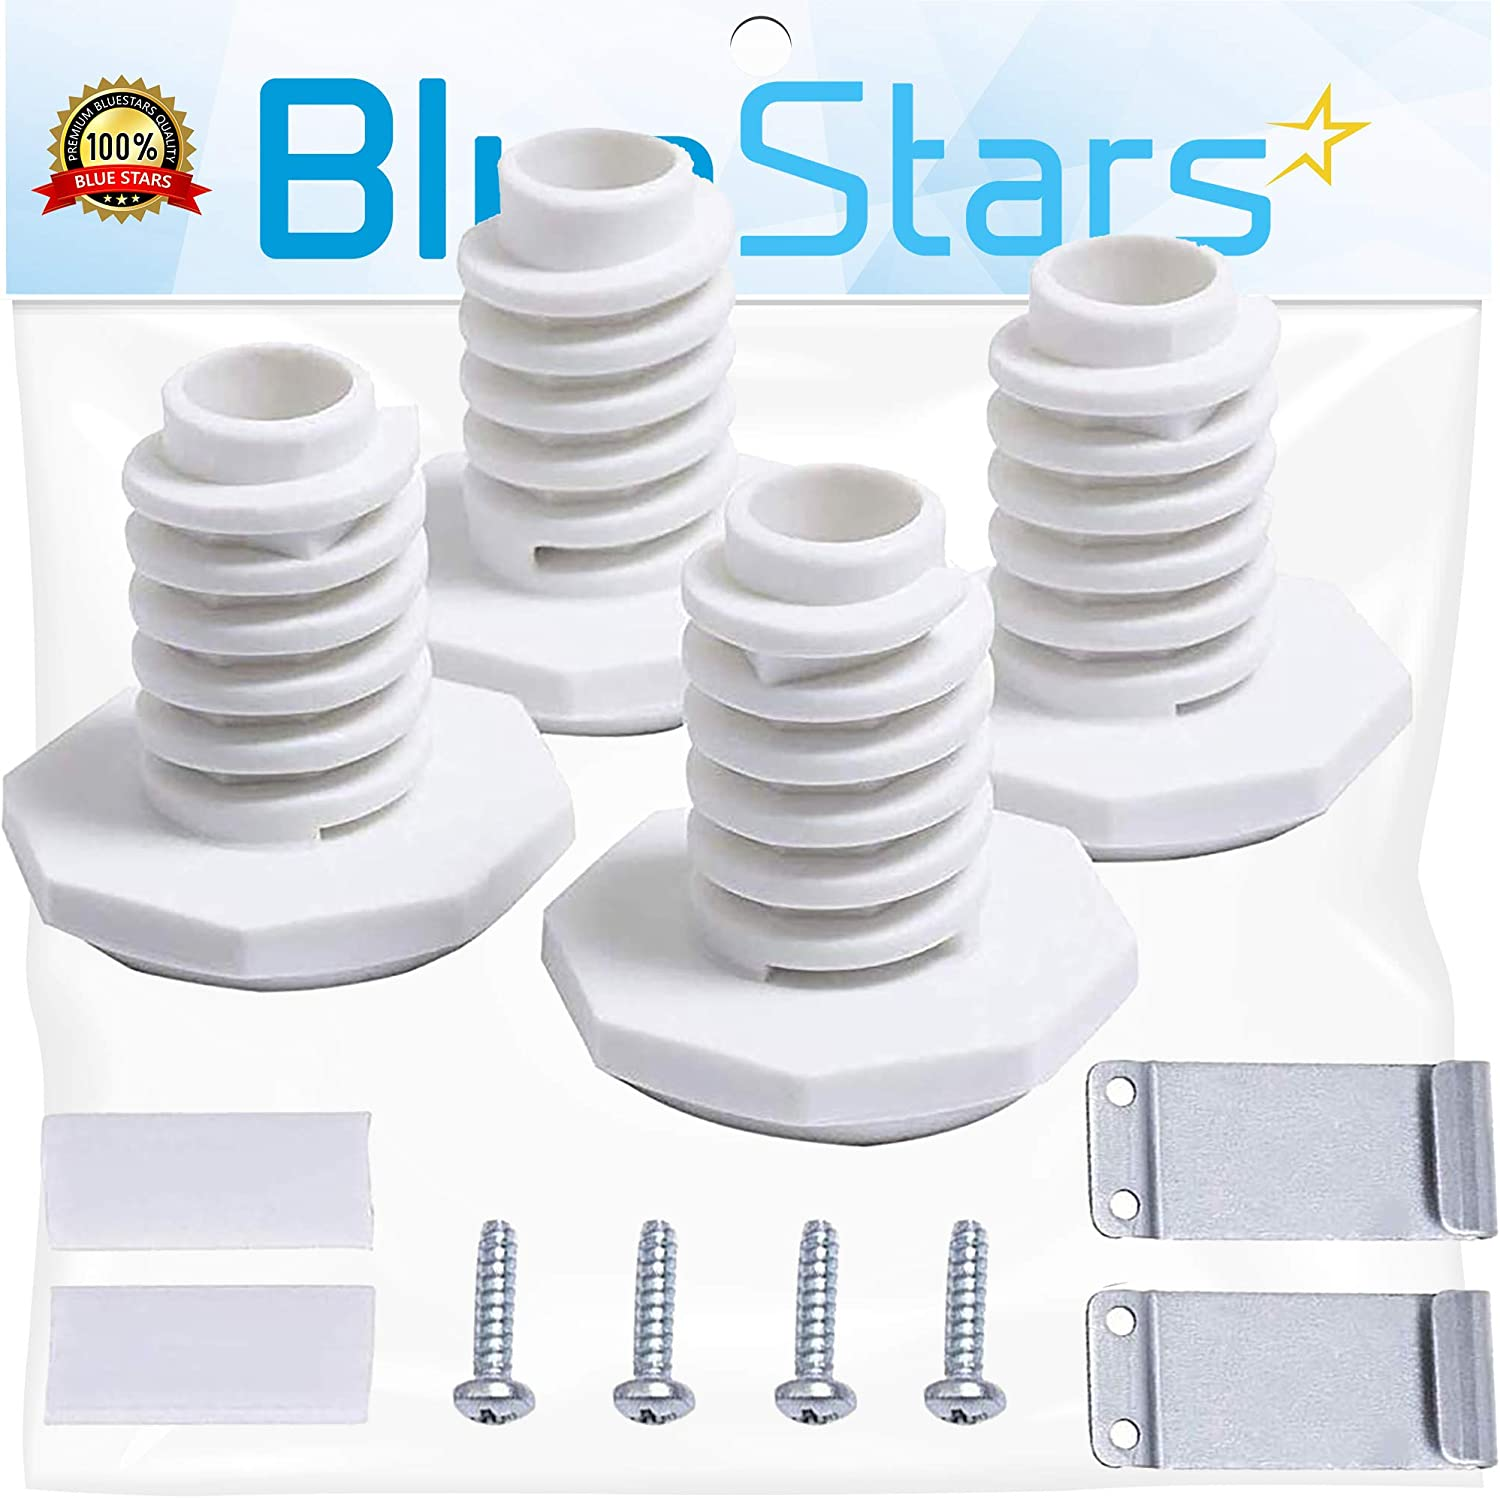 Ultra Durable W10869845 Dryer Stack Kit Replacement by Blue Stars – Exact Fit For Whirlpool Standard & Long Vent Dryers - Replaces W10298318 W10761316 W10298318RP AP6047938 PS3407625